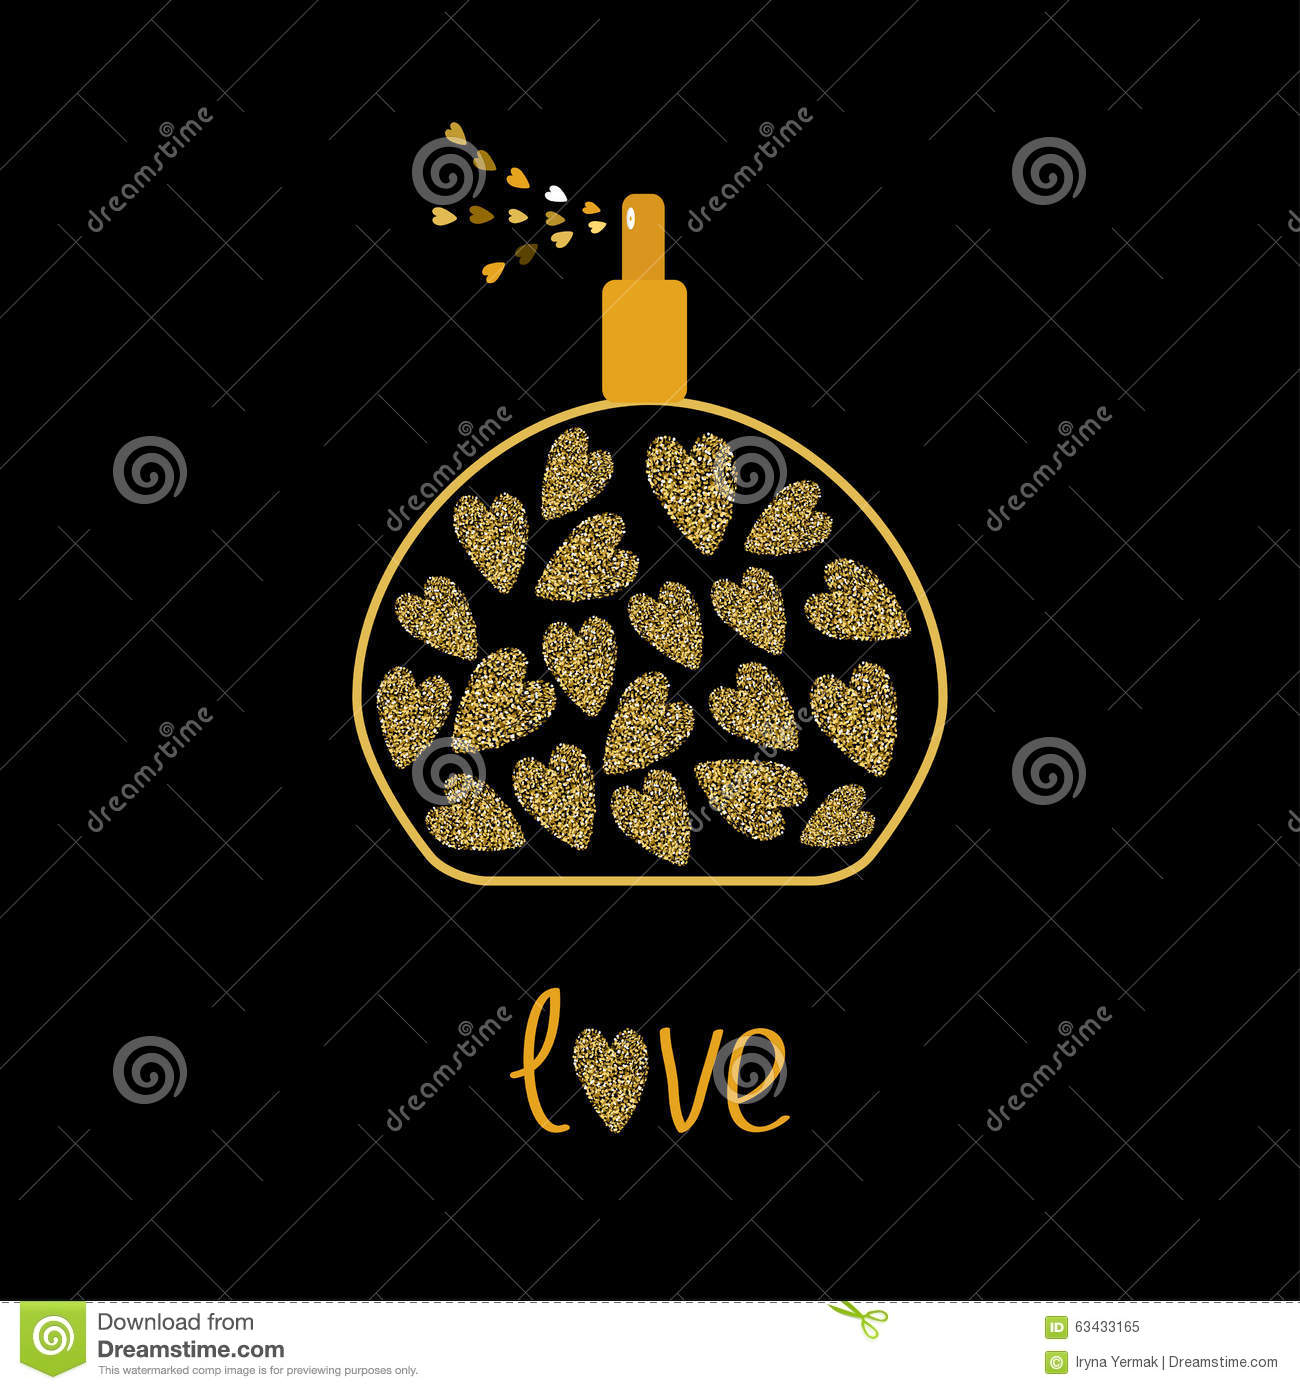 Perfume Bottle With Hearts Inside Gold Sparkles Glitter Texture